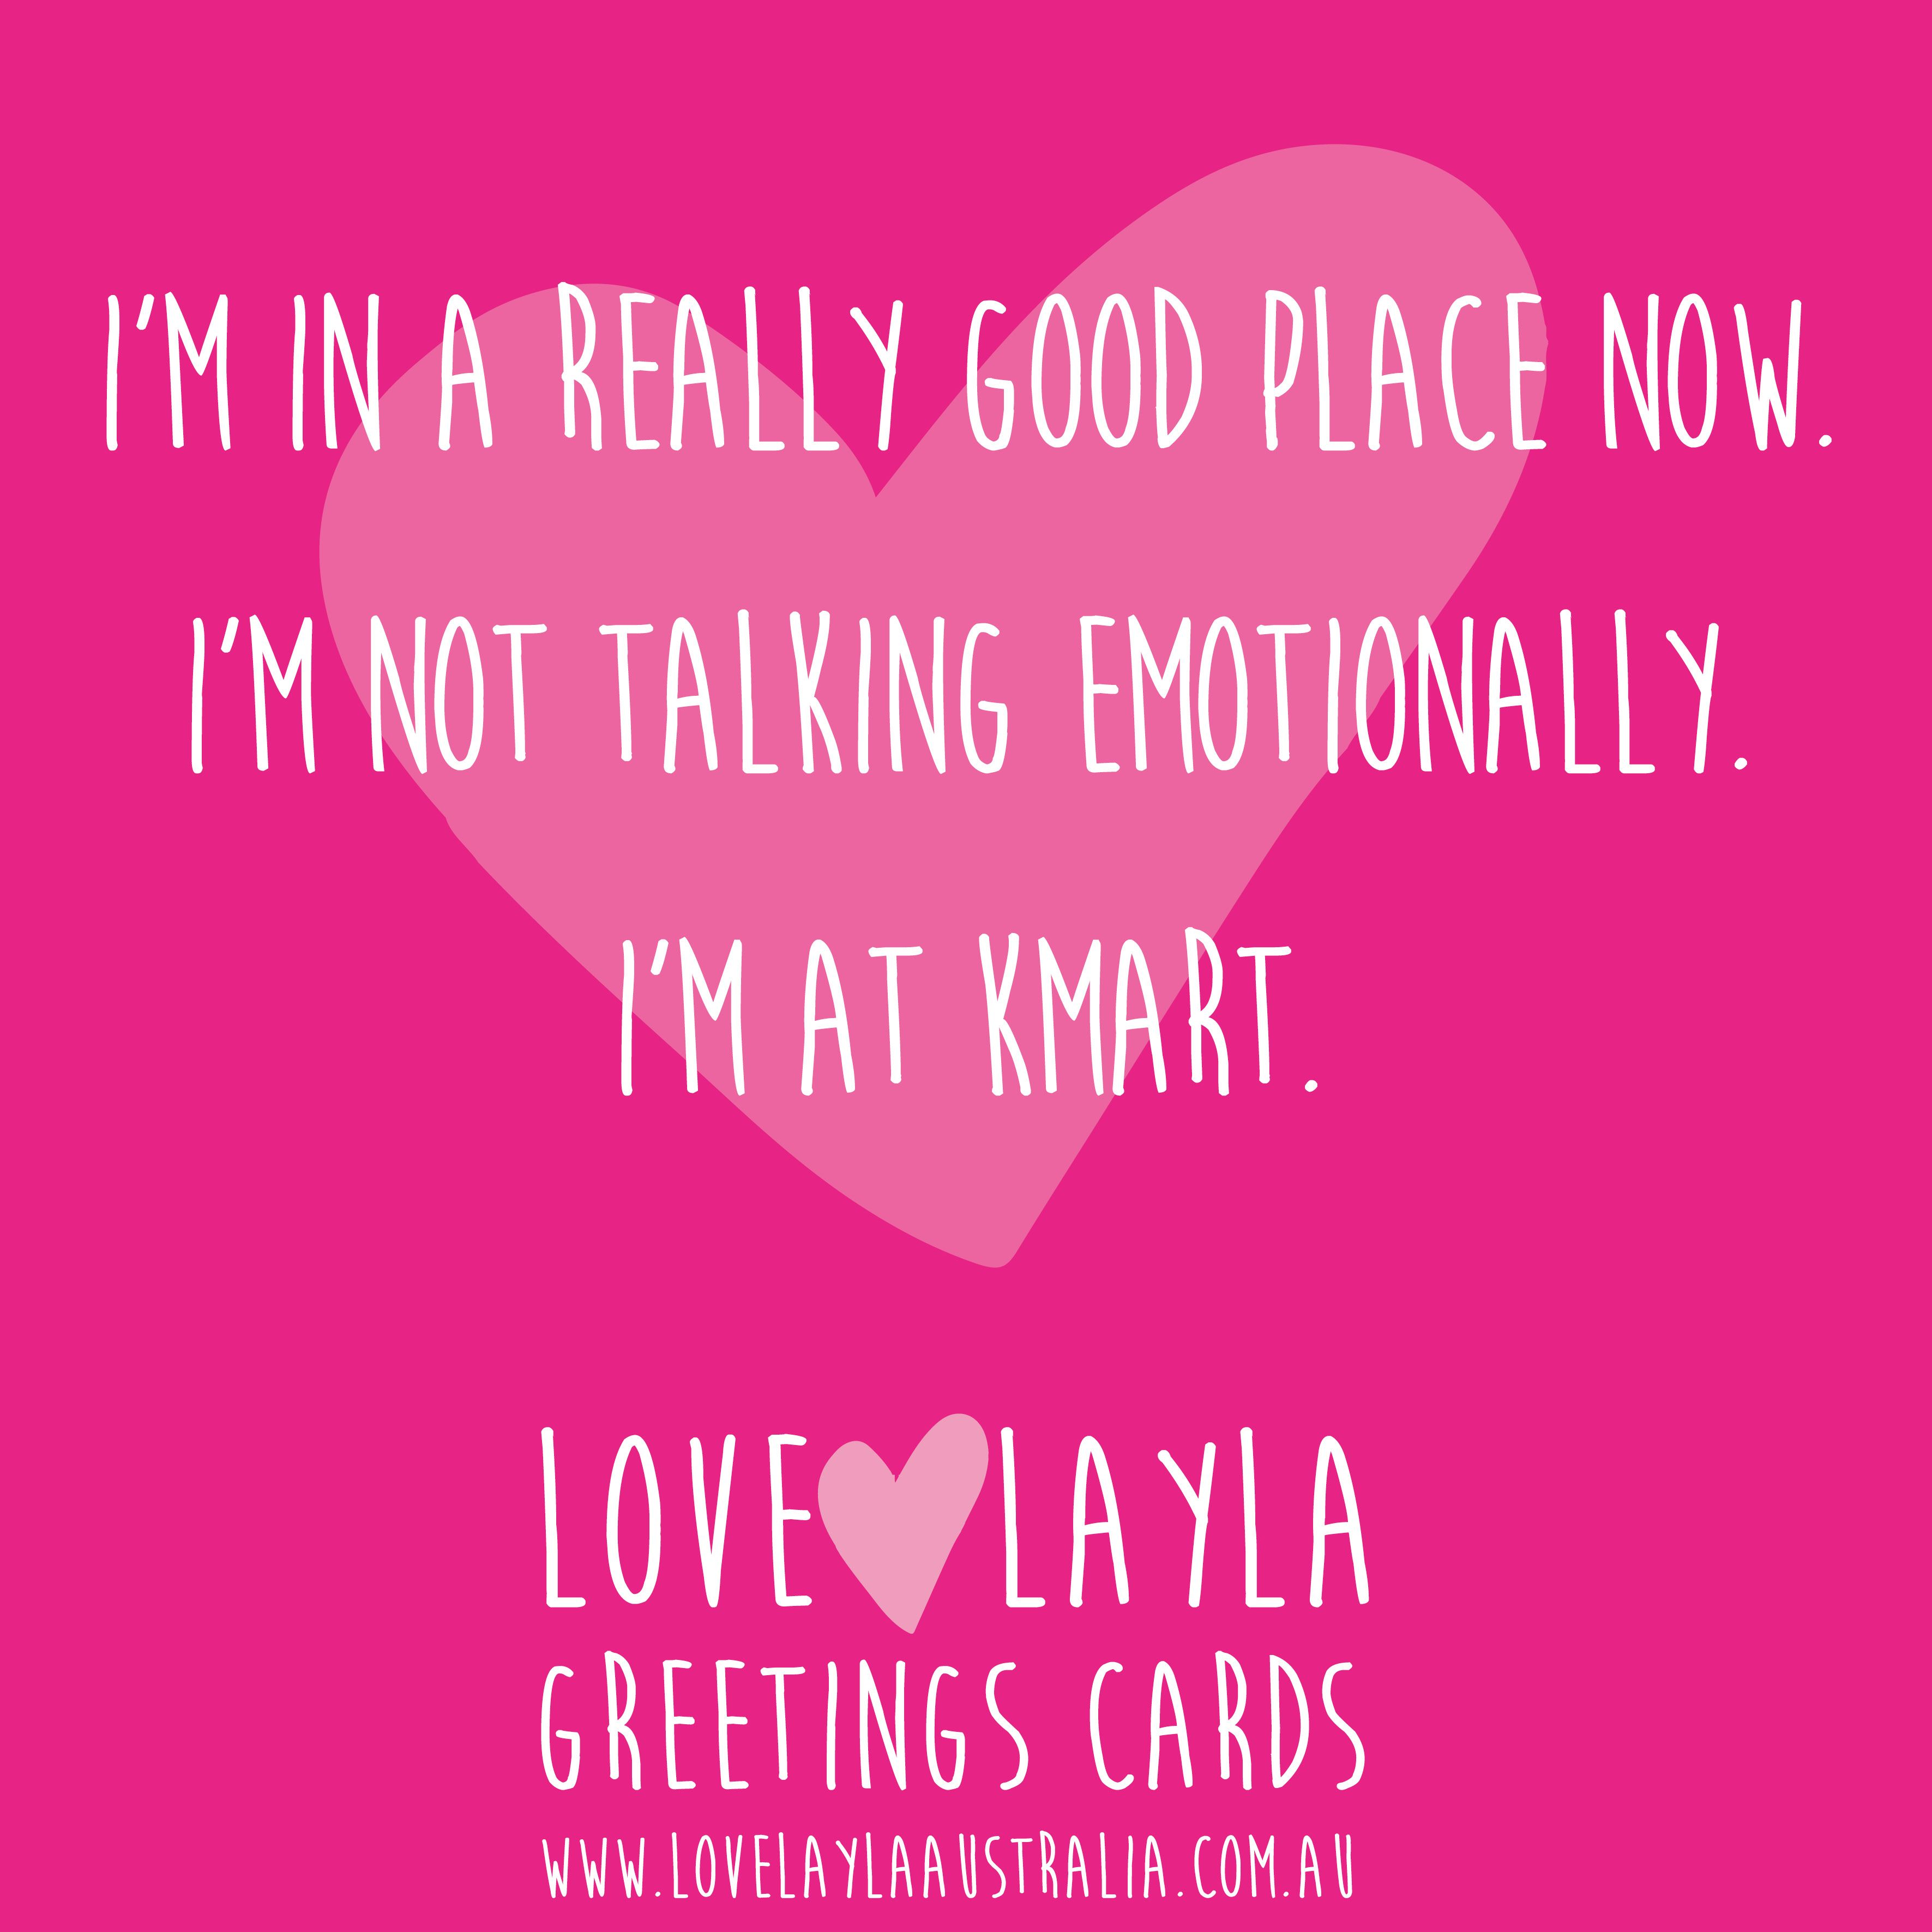 A Really Really Good Place 24hrs Sogood Kmart Lovelaylaaustralia Greetingcards Funnycards Funny Mem Funny Cards Funny Greeting Cards Everything Funny